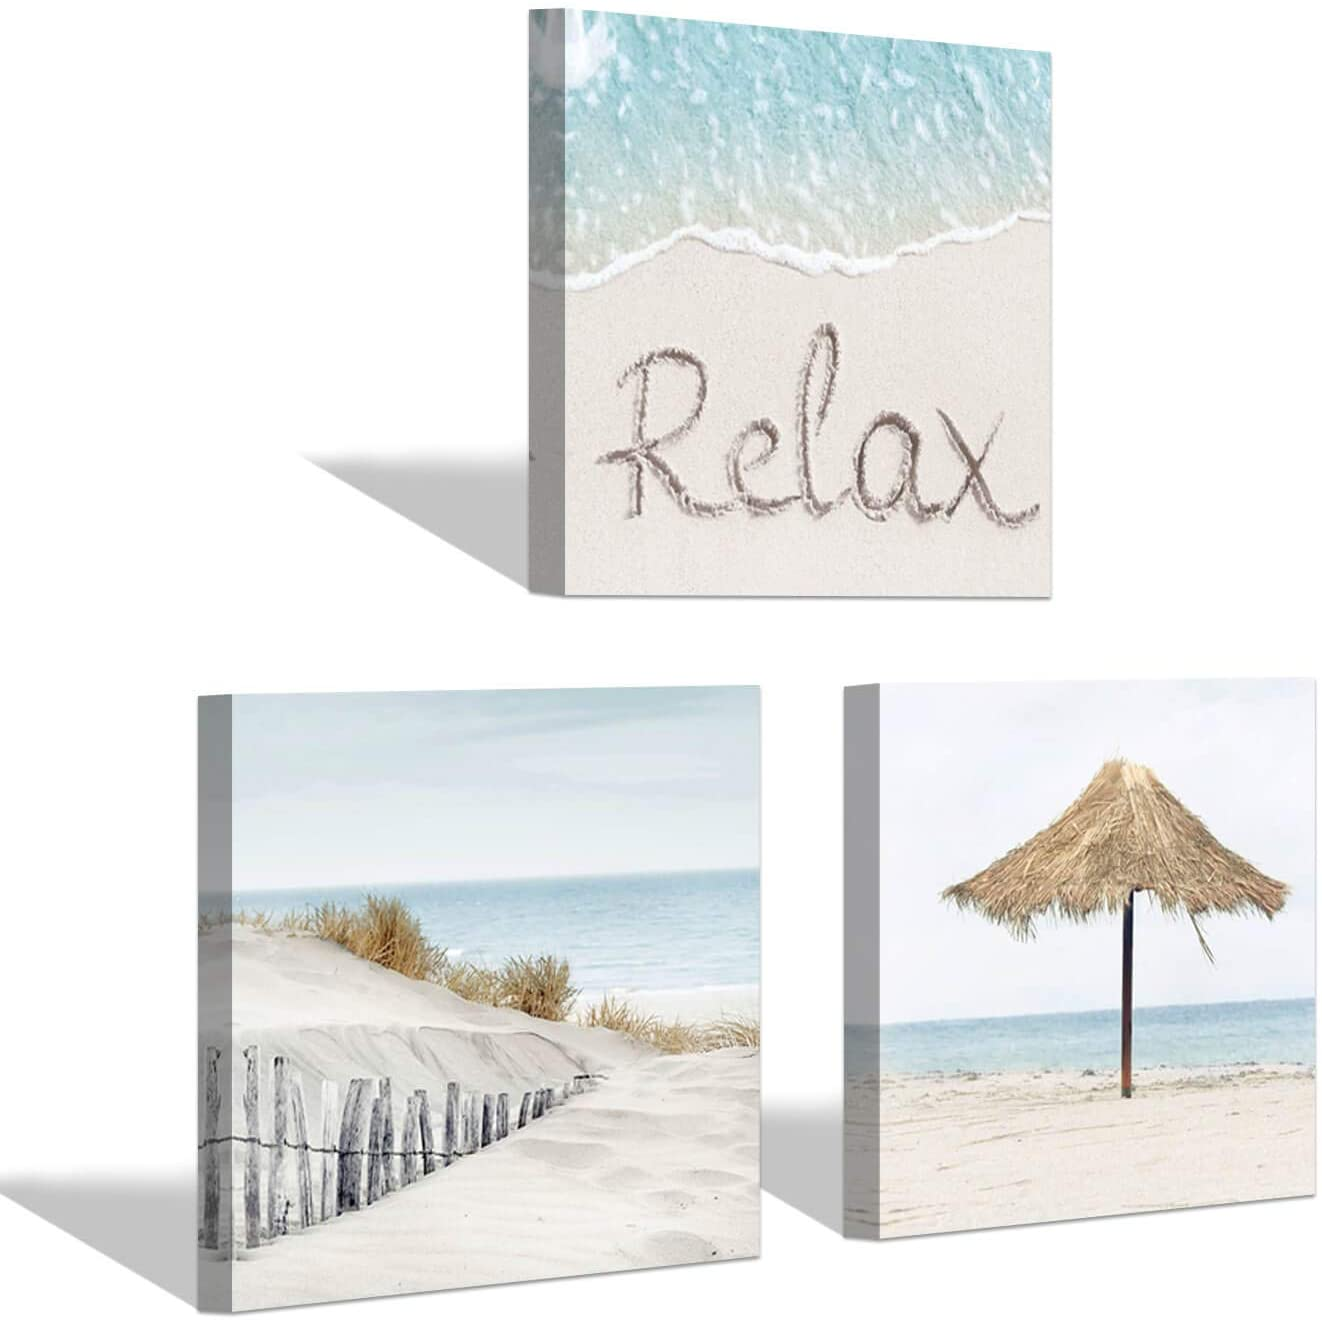 Beach Canvas Artwork Wall Art: Coastal View Seascape Wave & Sand Print Picture on Canvas for Home Decor(12'' x 12'' x 3 Panels)